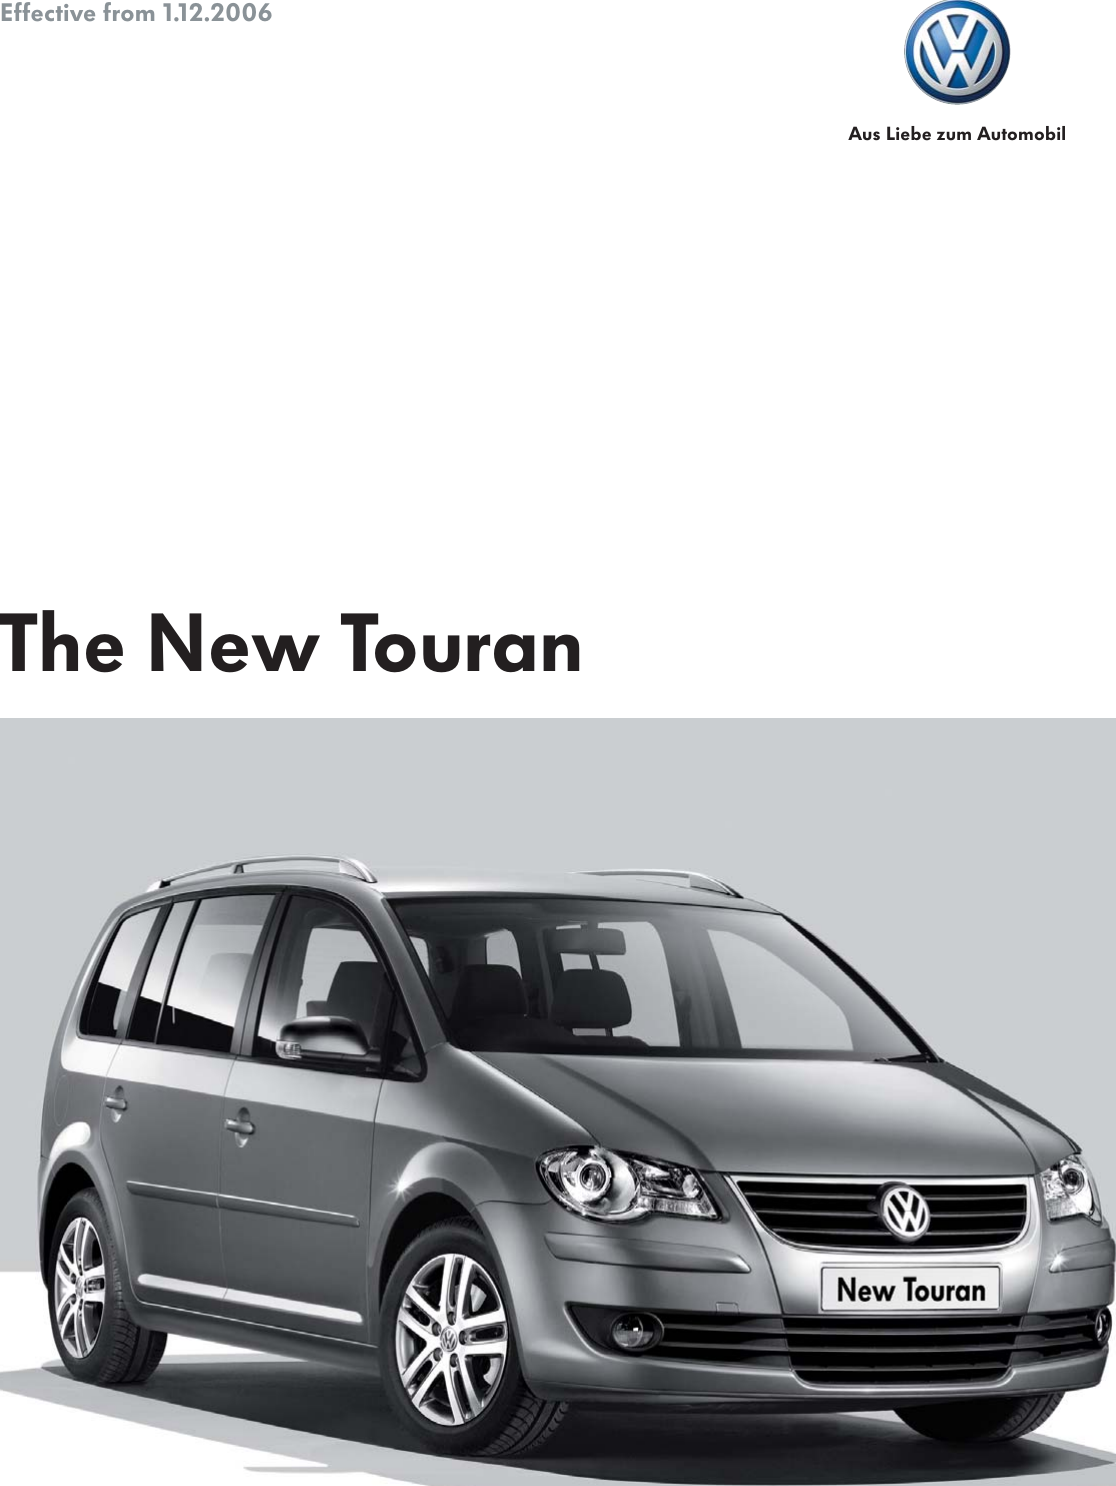 User guide to touran browse manual guides volkswagen the new touran users manual 13724 to iss 2 pl 1 12 06 pdf rh usermanual wiki user guide and slate hard reset user guide and metro datavac esd fandeluxe Images